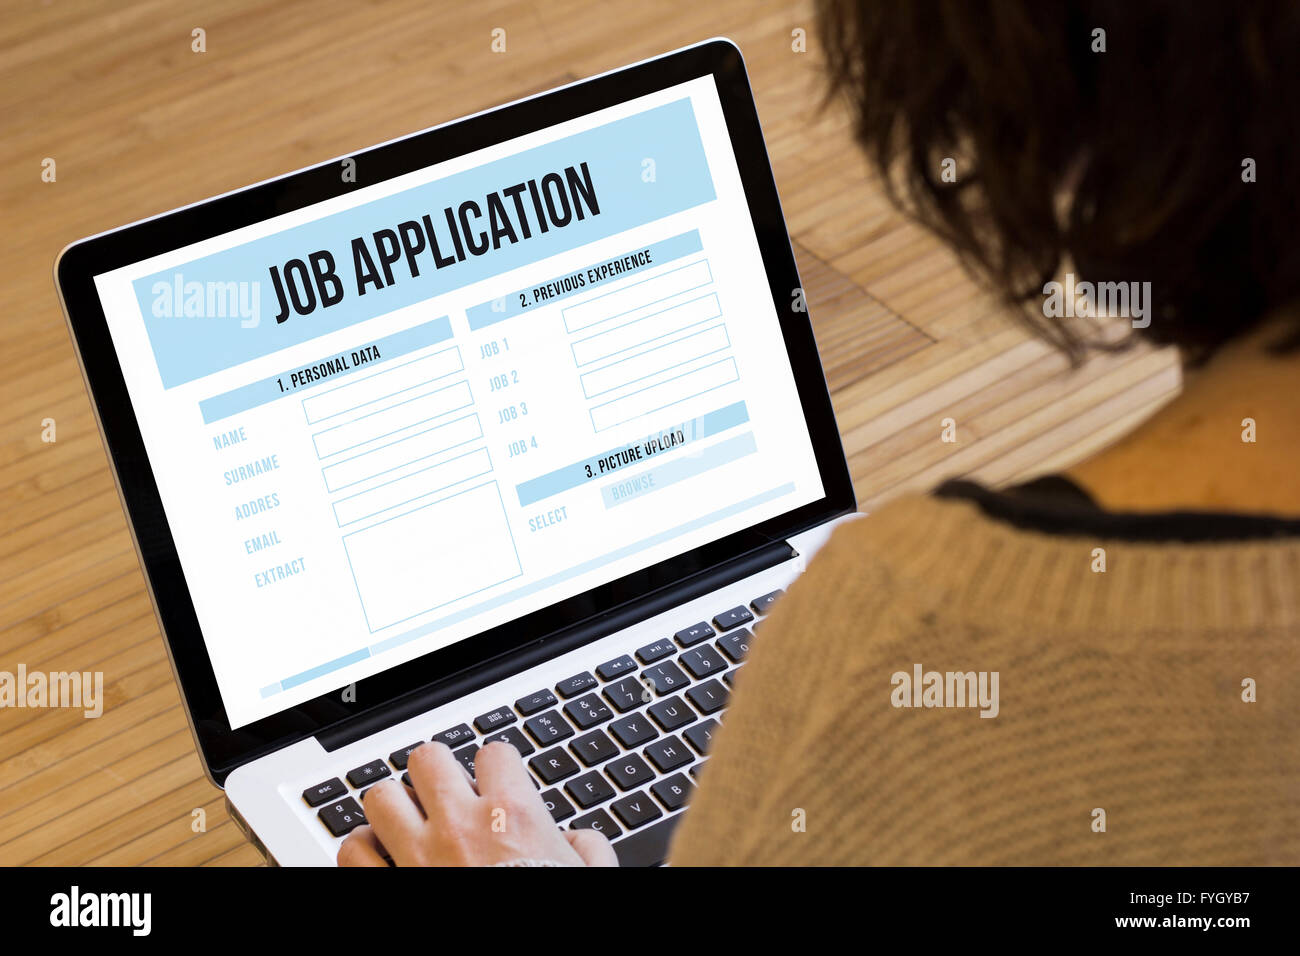 job search online concept: job application on a laptop screen - Stock Image